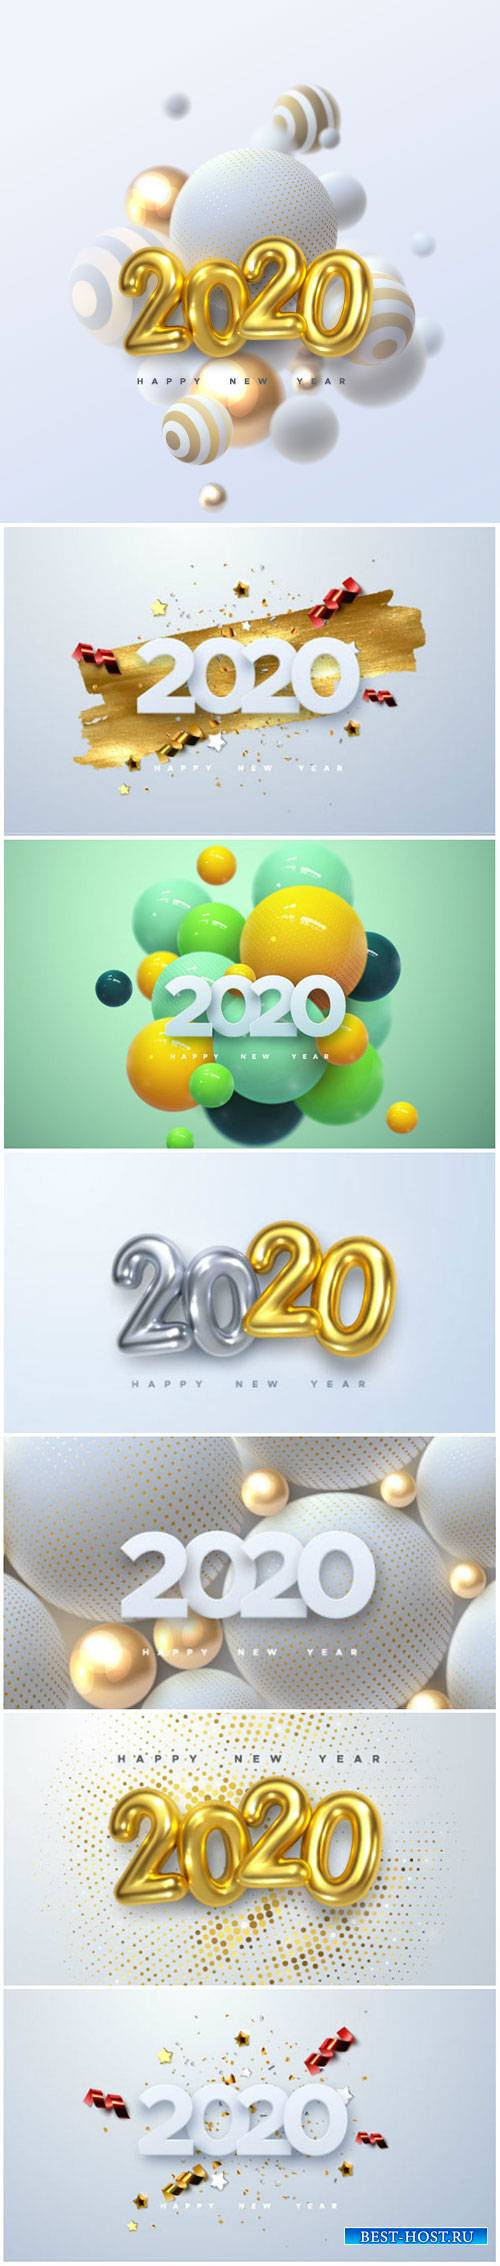 Happy New 2020 Year, holiday vector illustration of numbers 2020 # 3